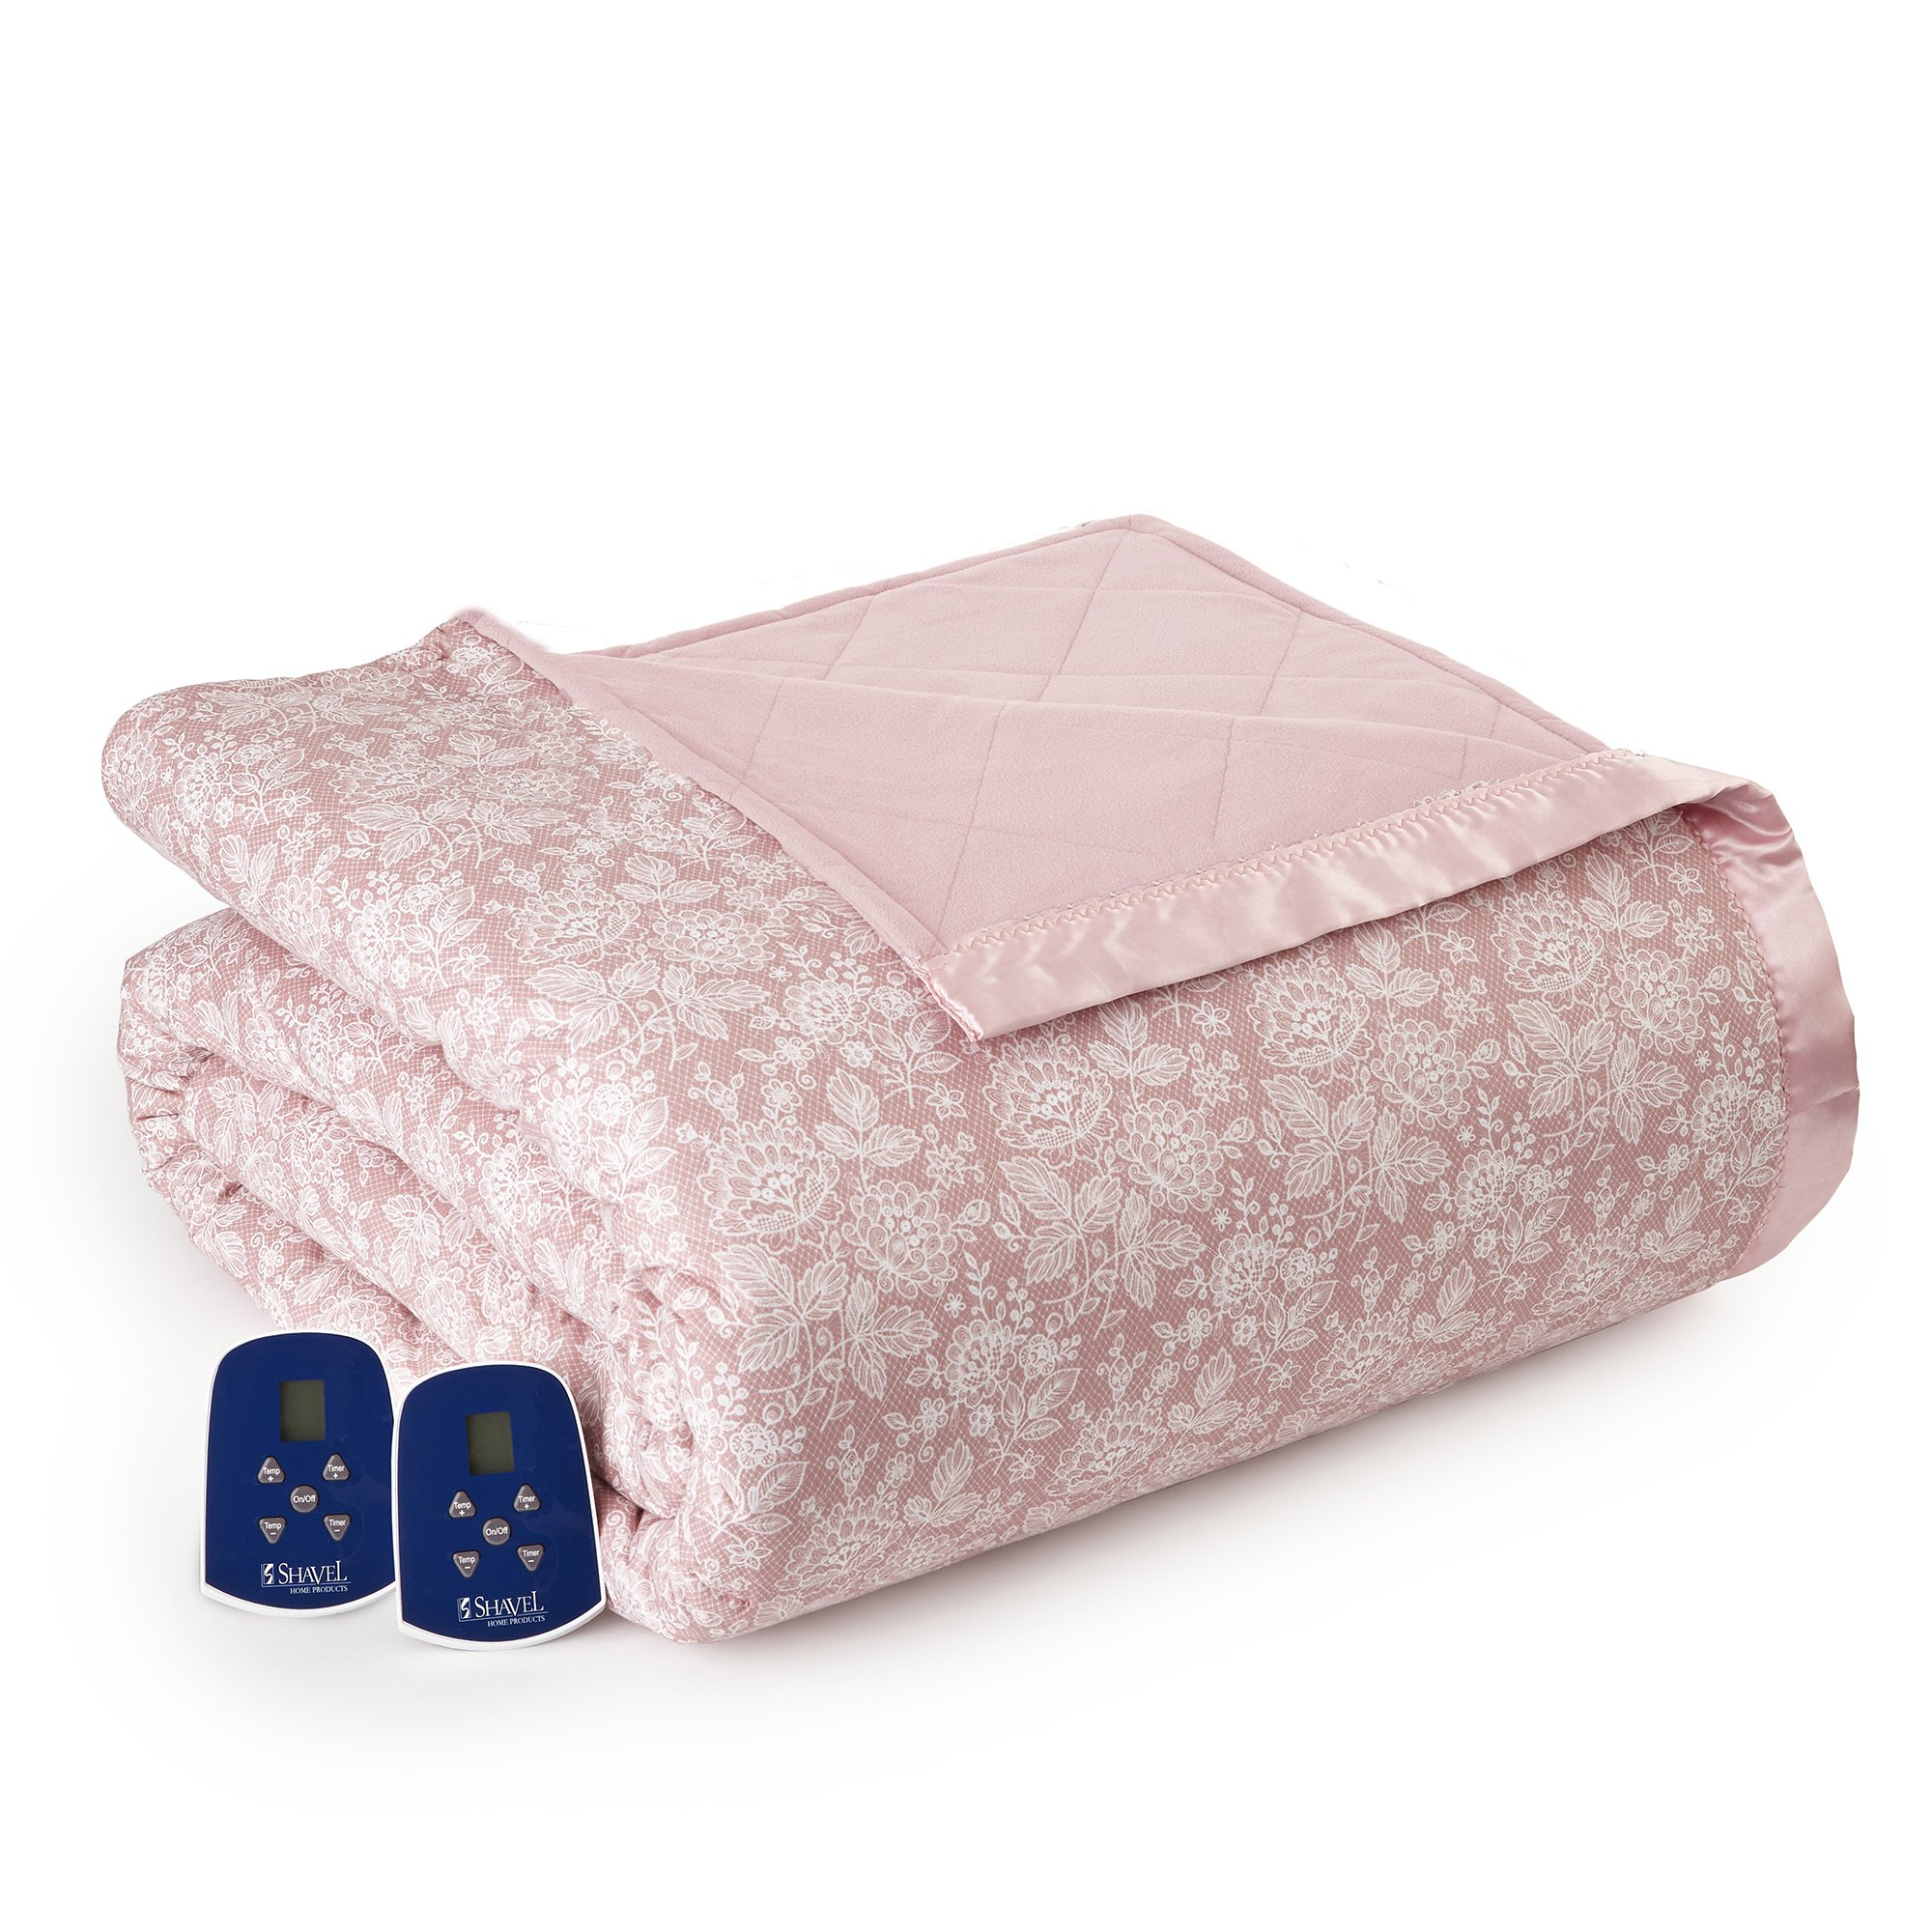 Thermee Micro Flannel Electric Blanket, Queen, Romance-Rose